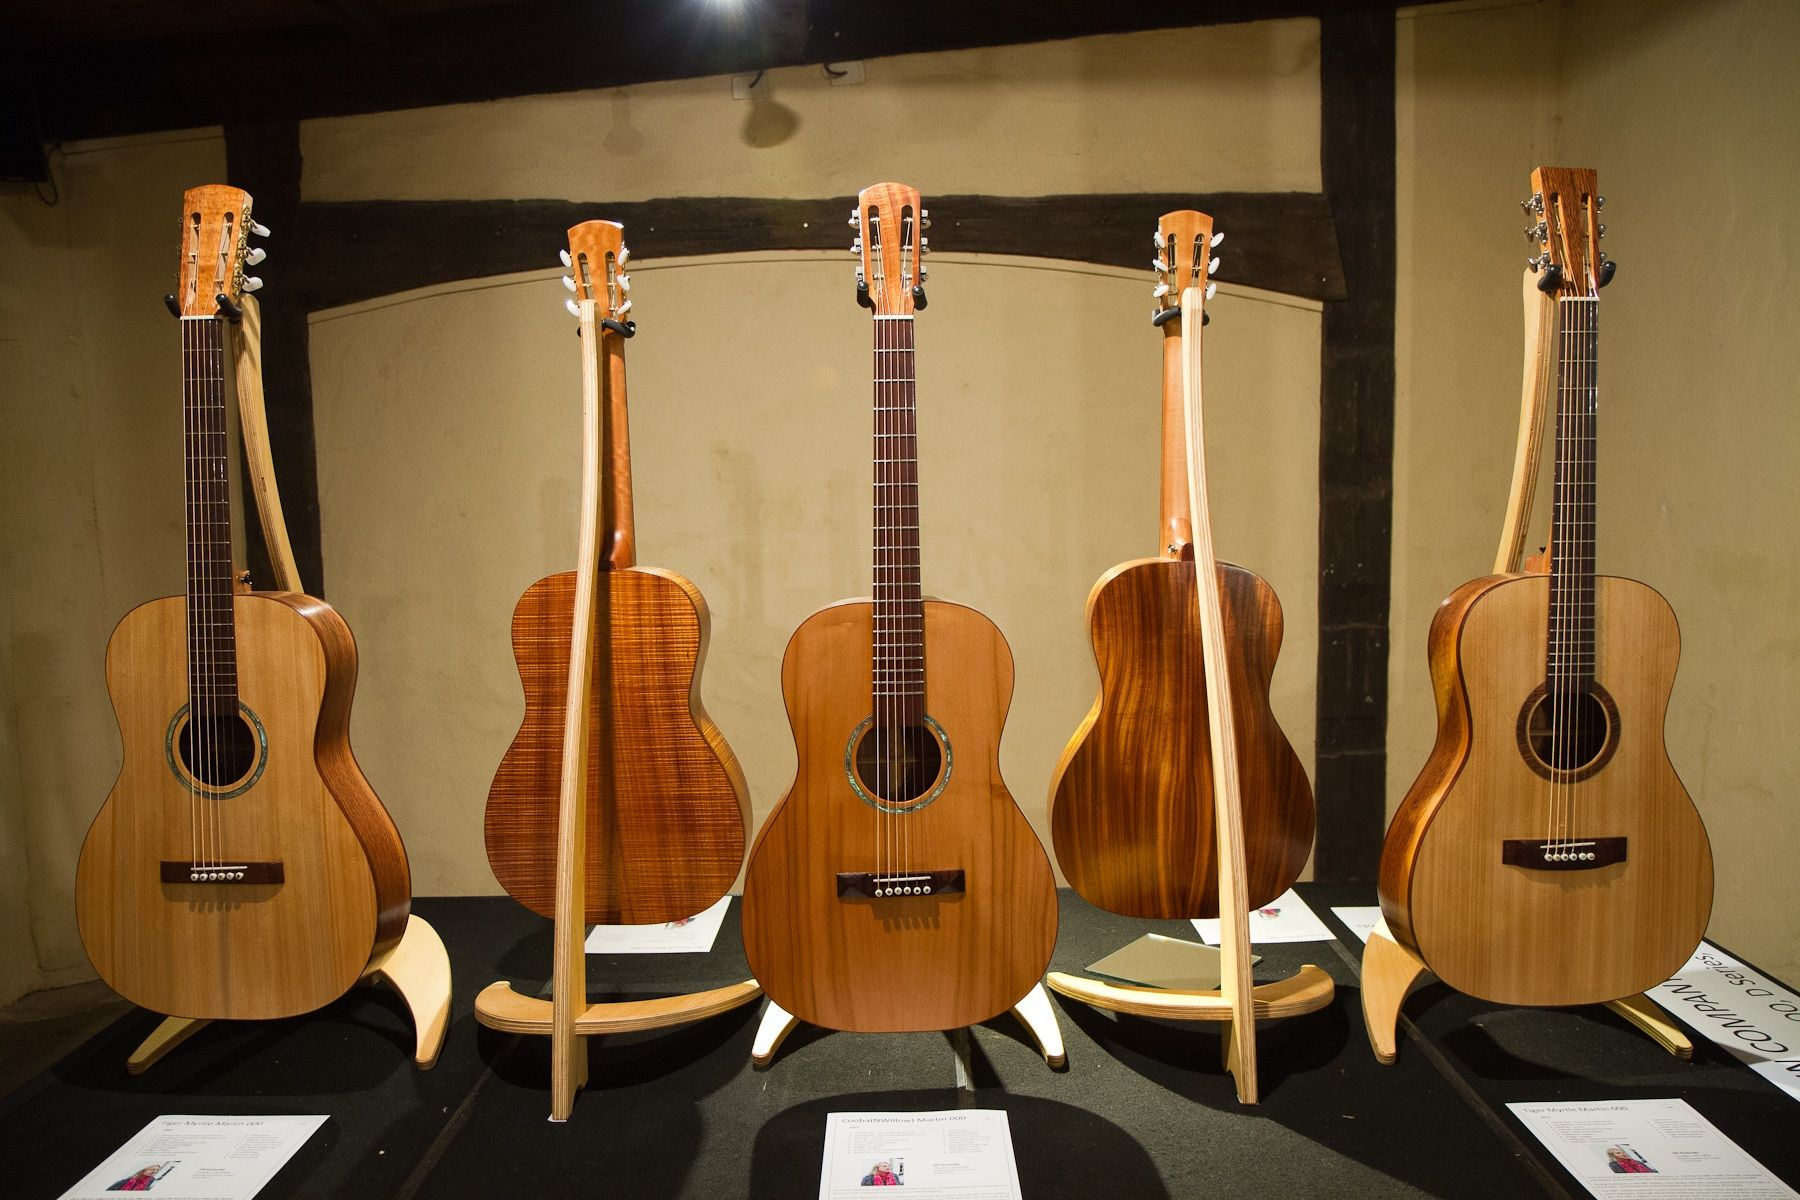 """On show at """"Beyond the Trees Guitar Exhibition"""". Montsalvat, 2012."""